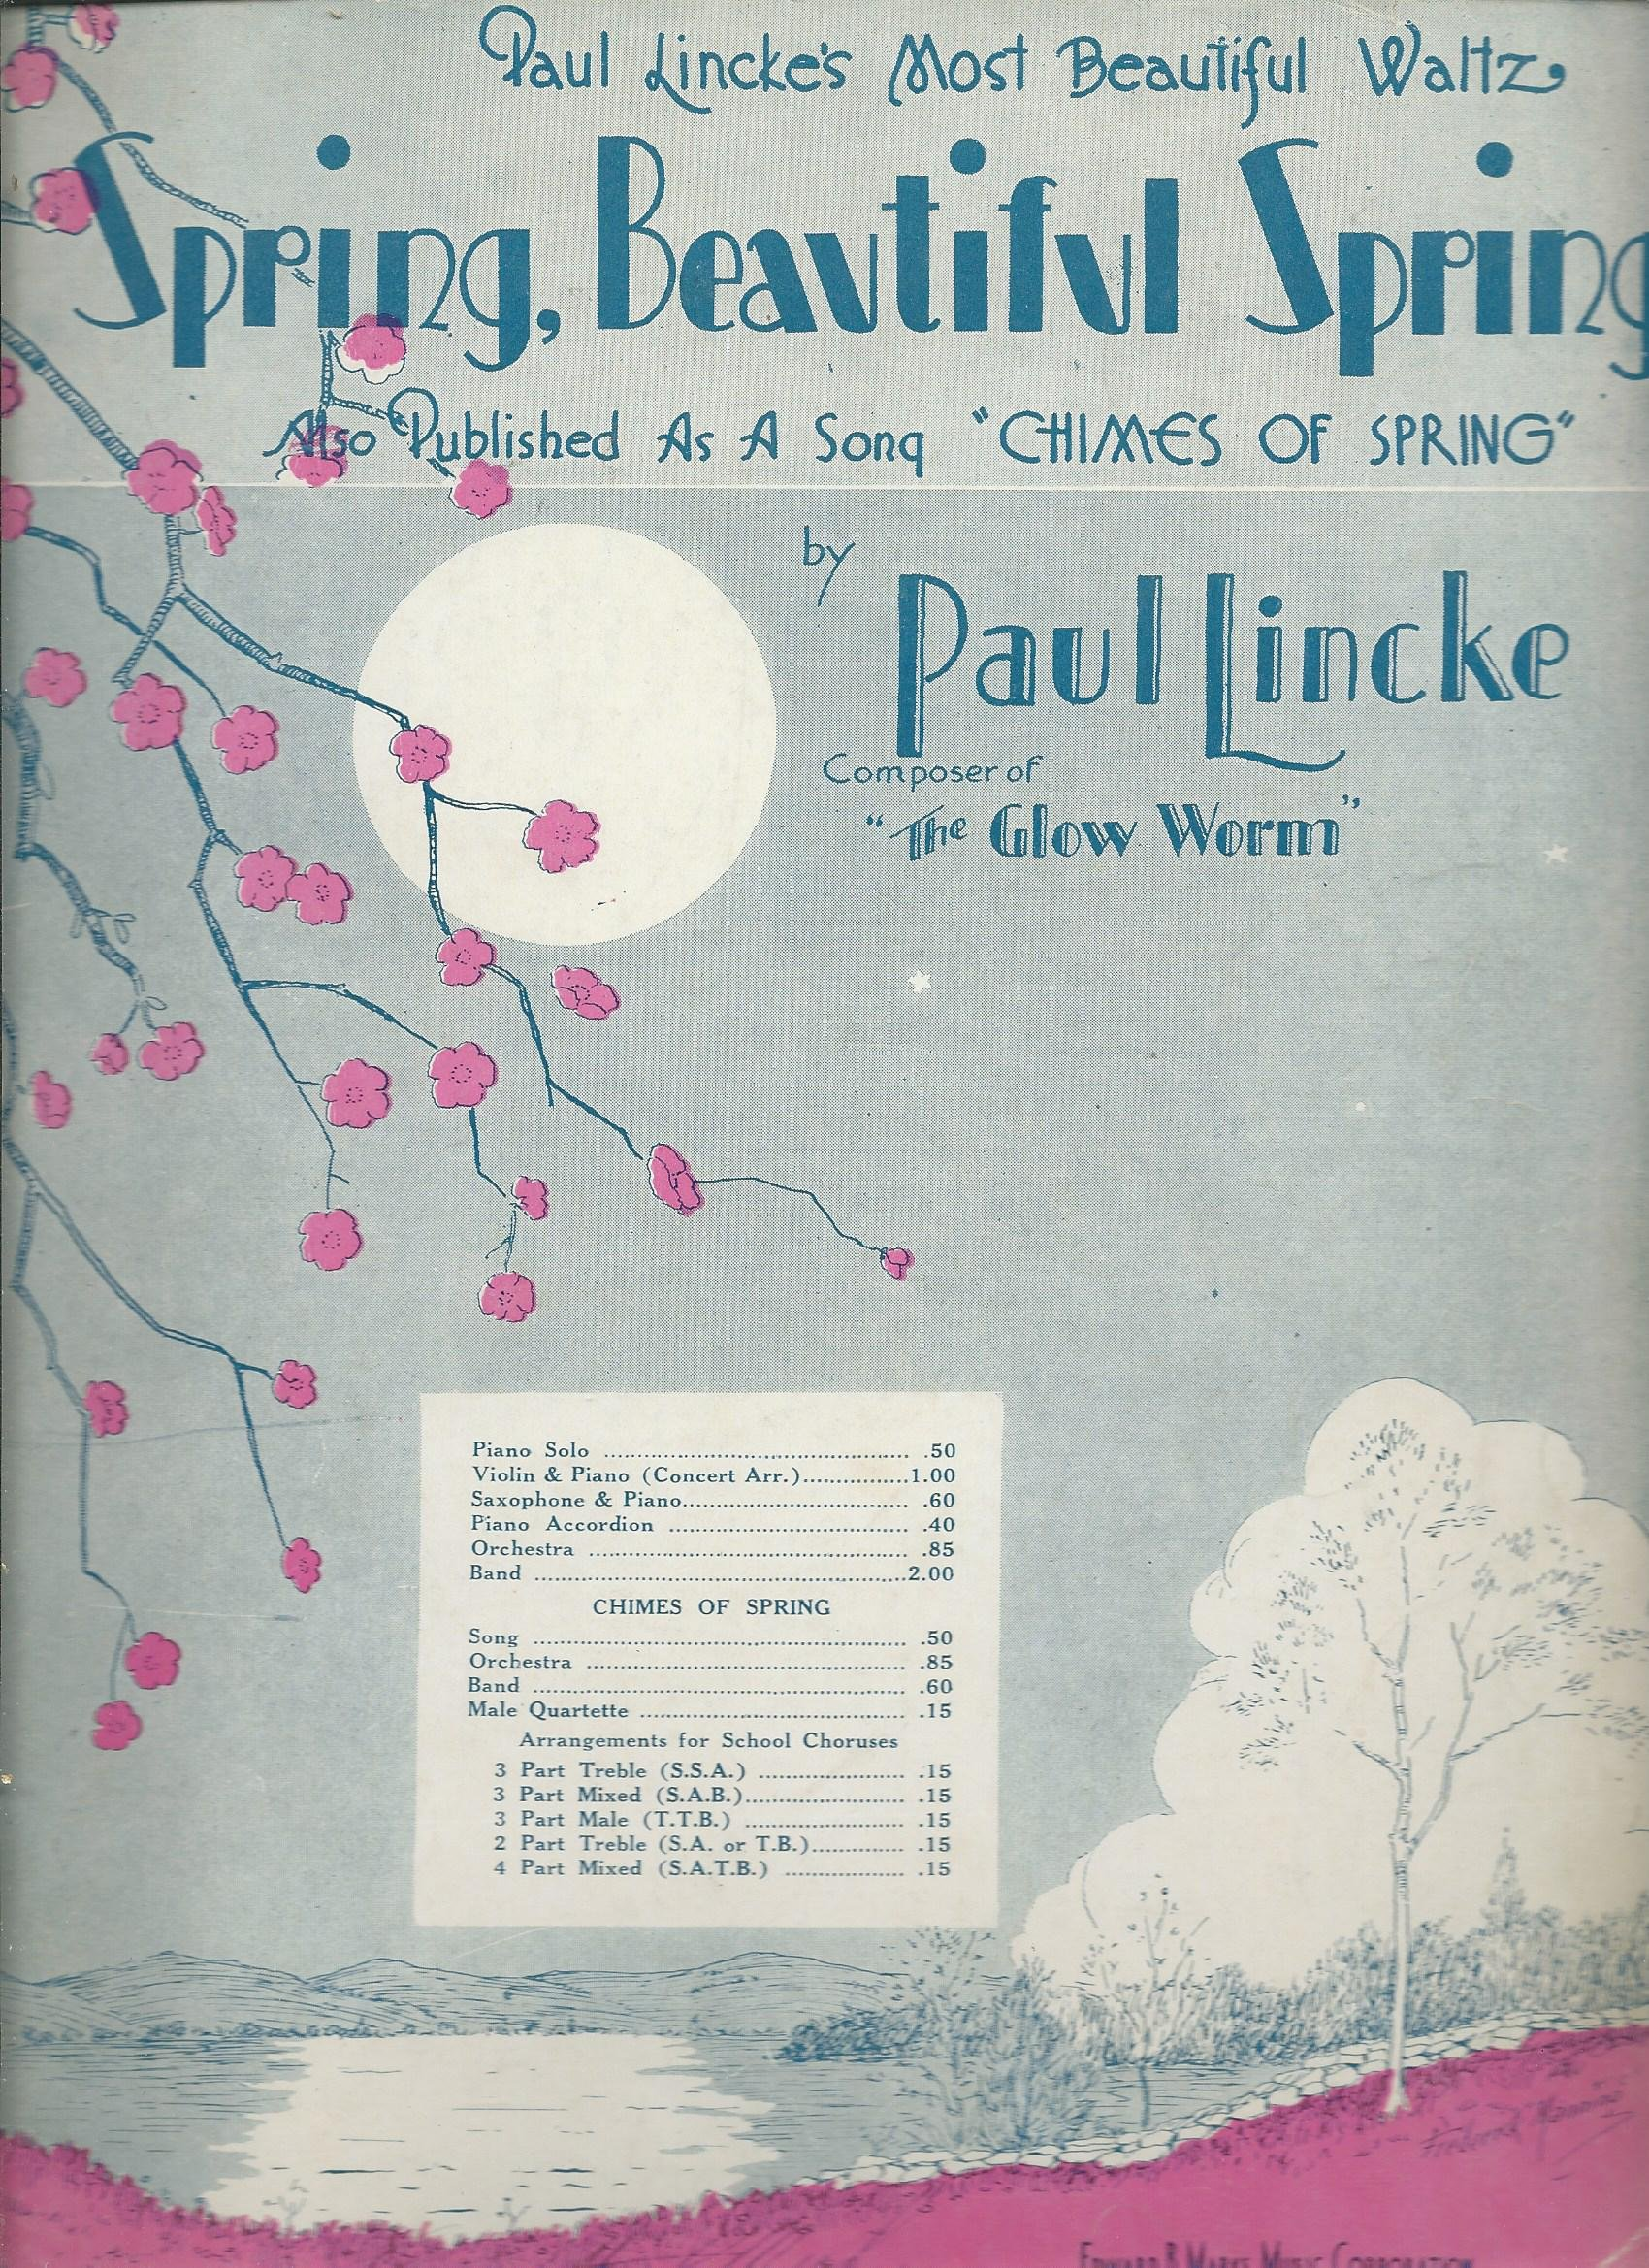 Spring, Beautiful Spring Piano Solo (Also Published As a